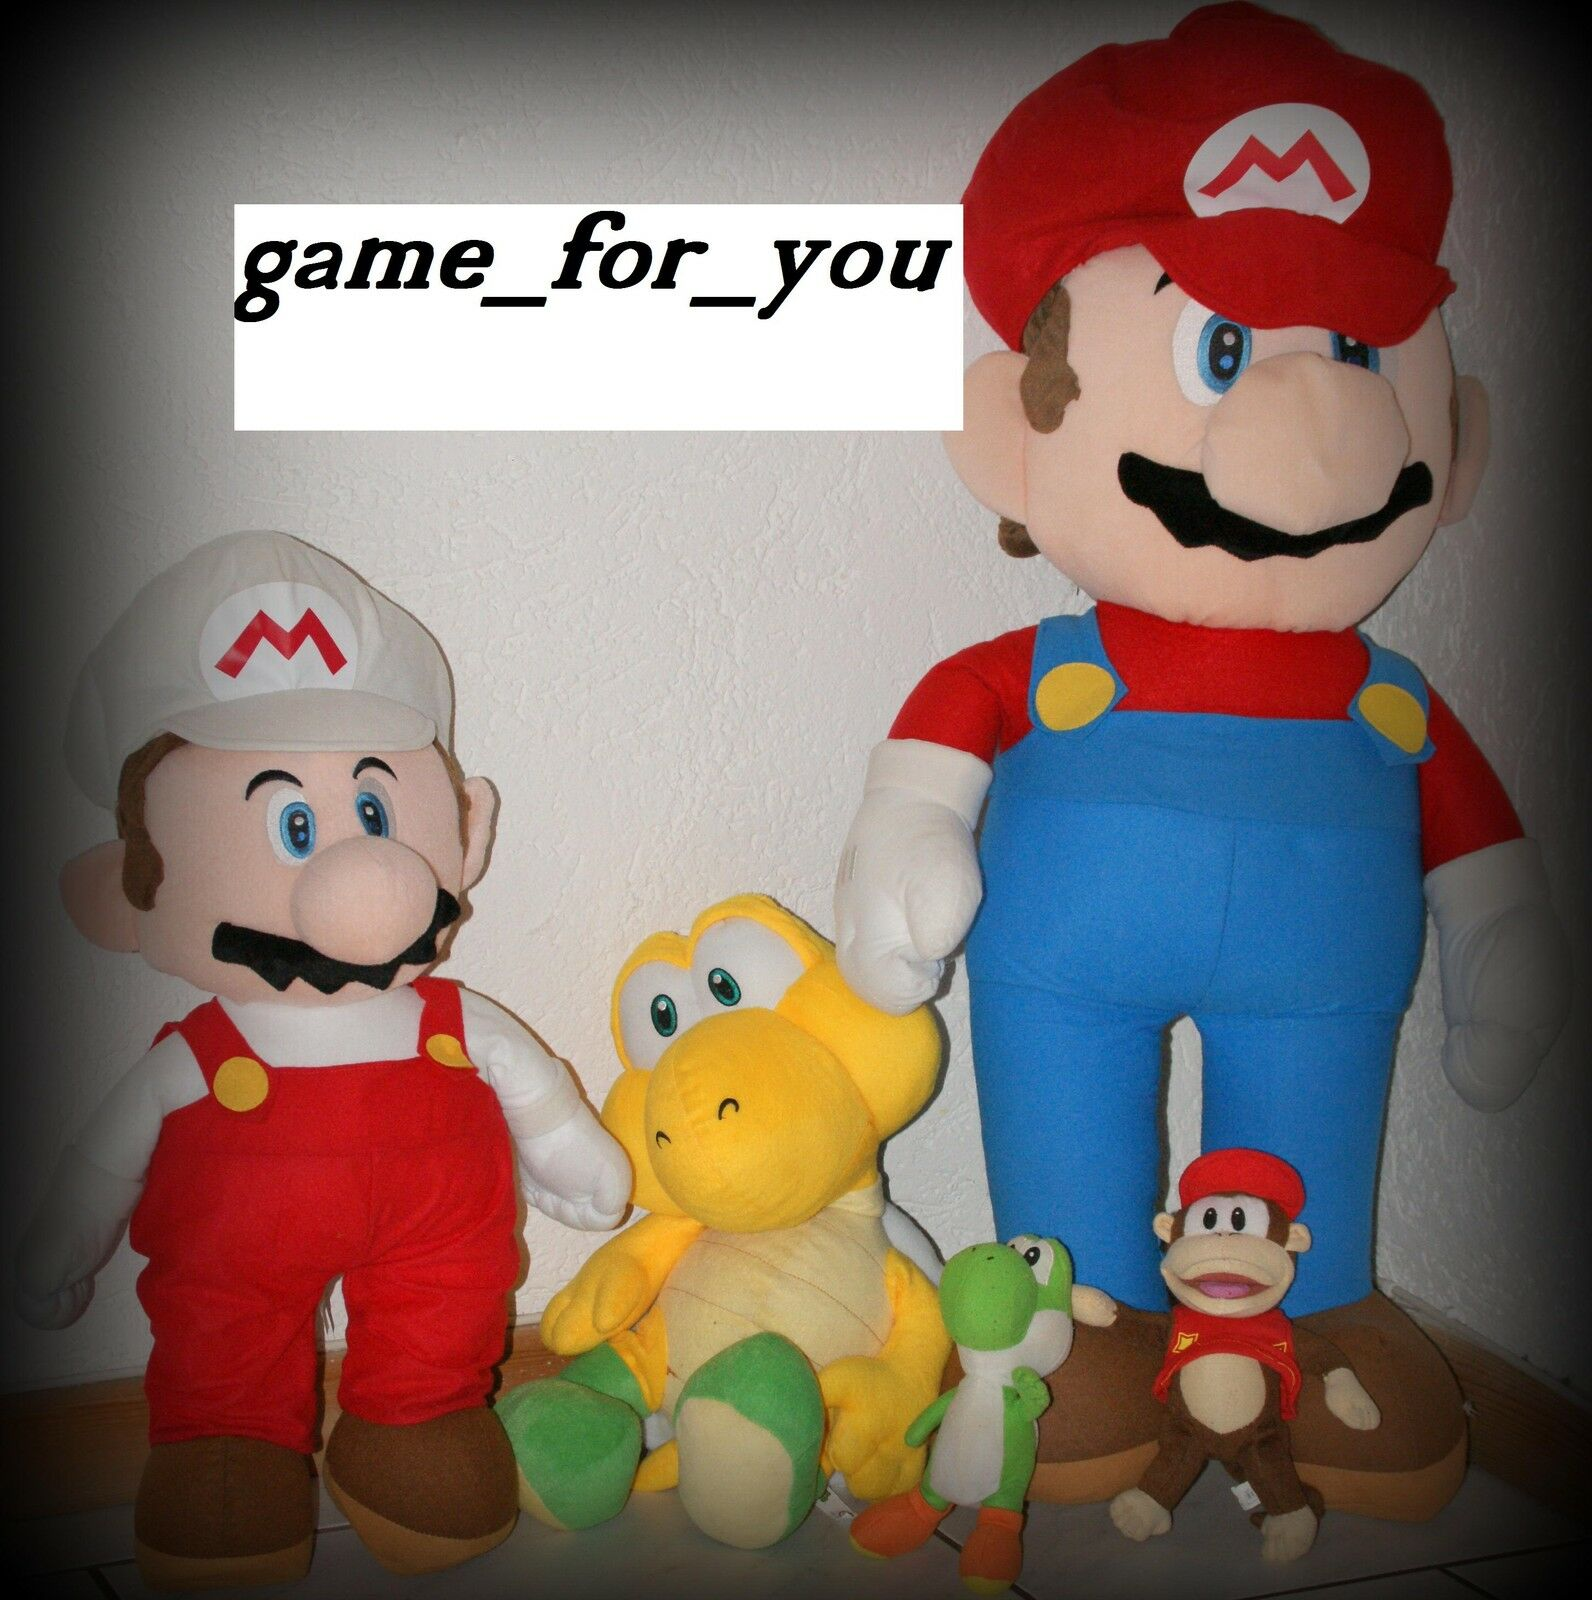 game_for_you1